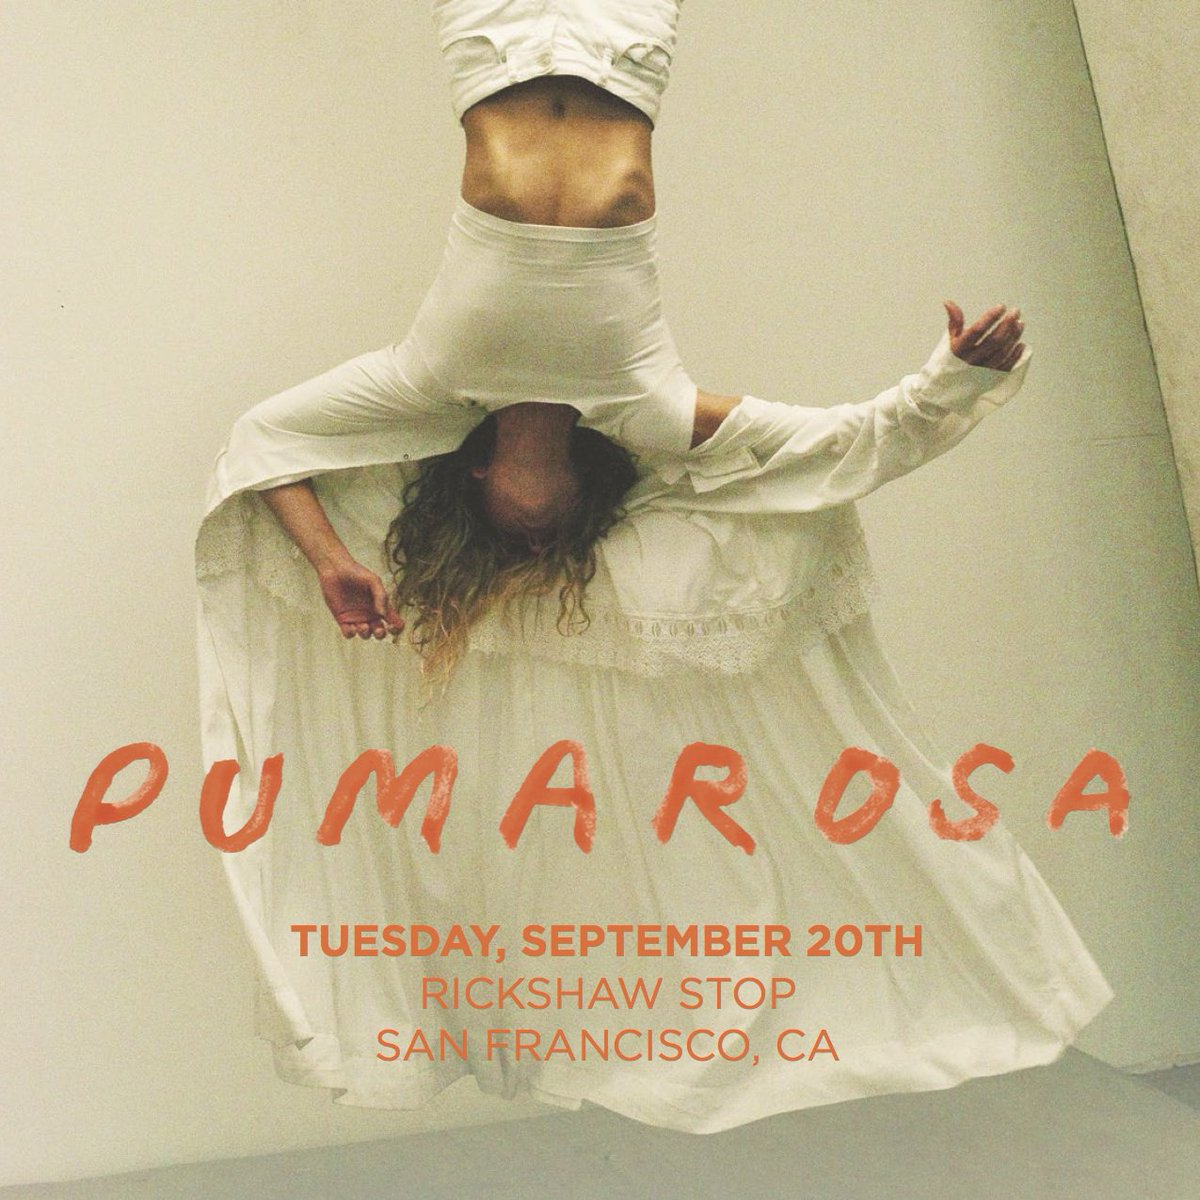 Retweet this for a chance to win 2 tix to see UK noise-pop band @pumarosamusic on 9/20! https://t.co/6OJadrSV8z